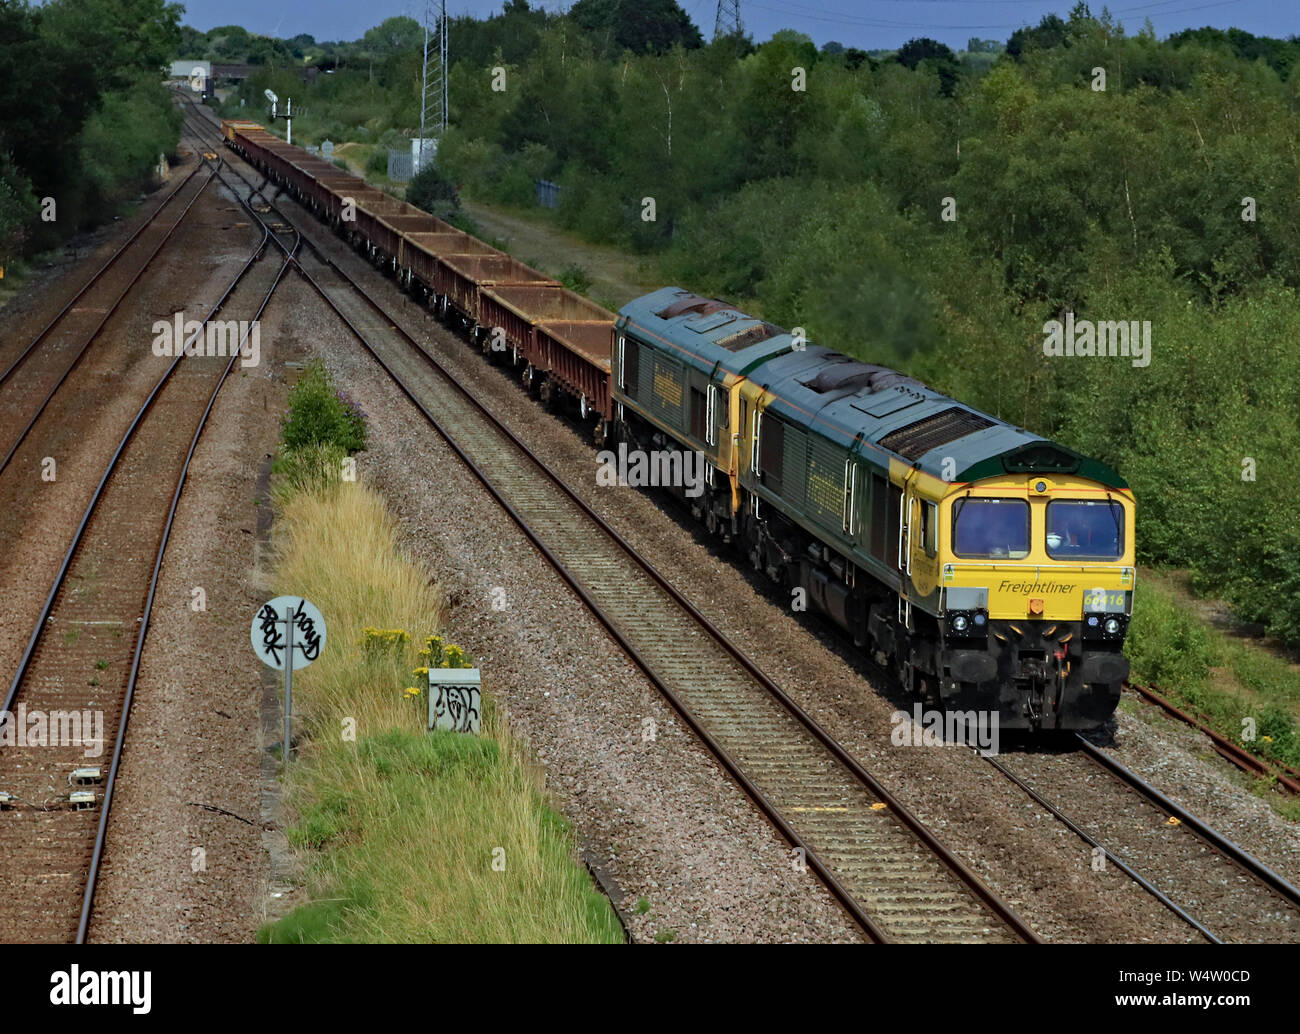 Freightliner locomotives no's 66416 and 66613 pass North Stafford Junction in near Willington in Derbyshire hauling a freight train. Stock Photo